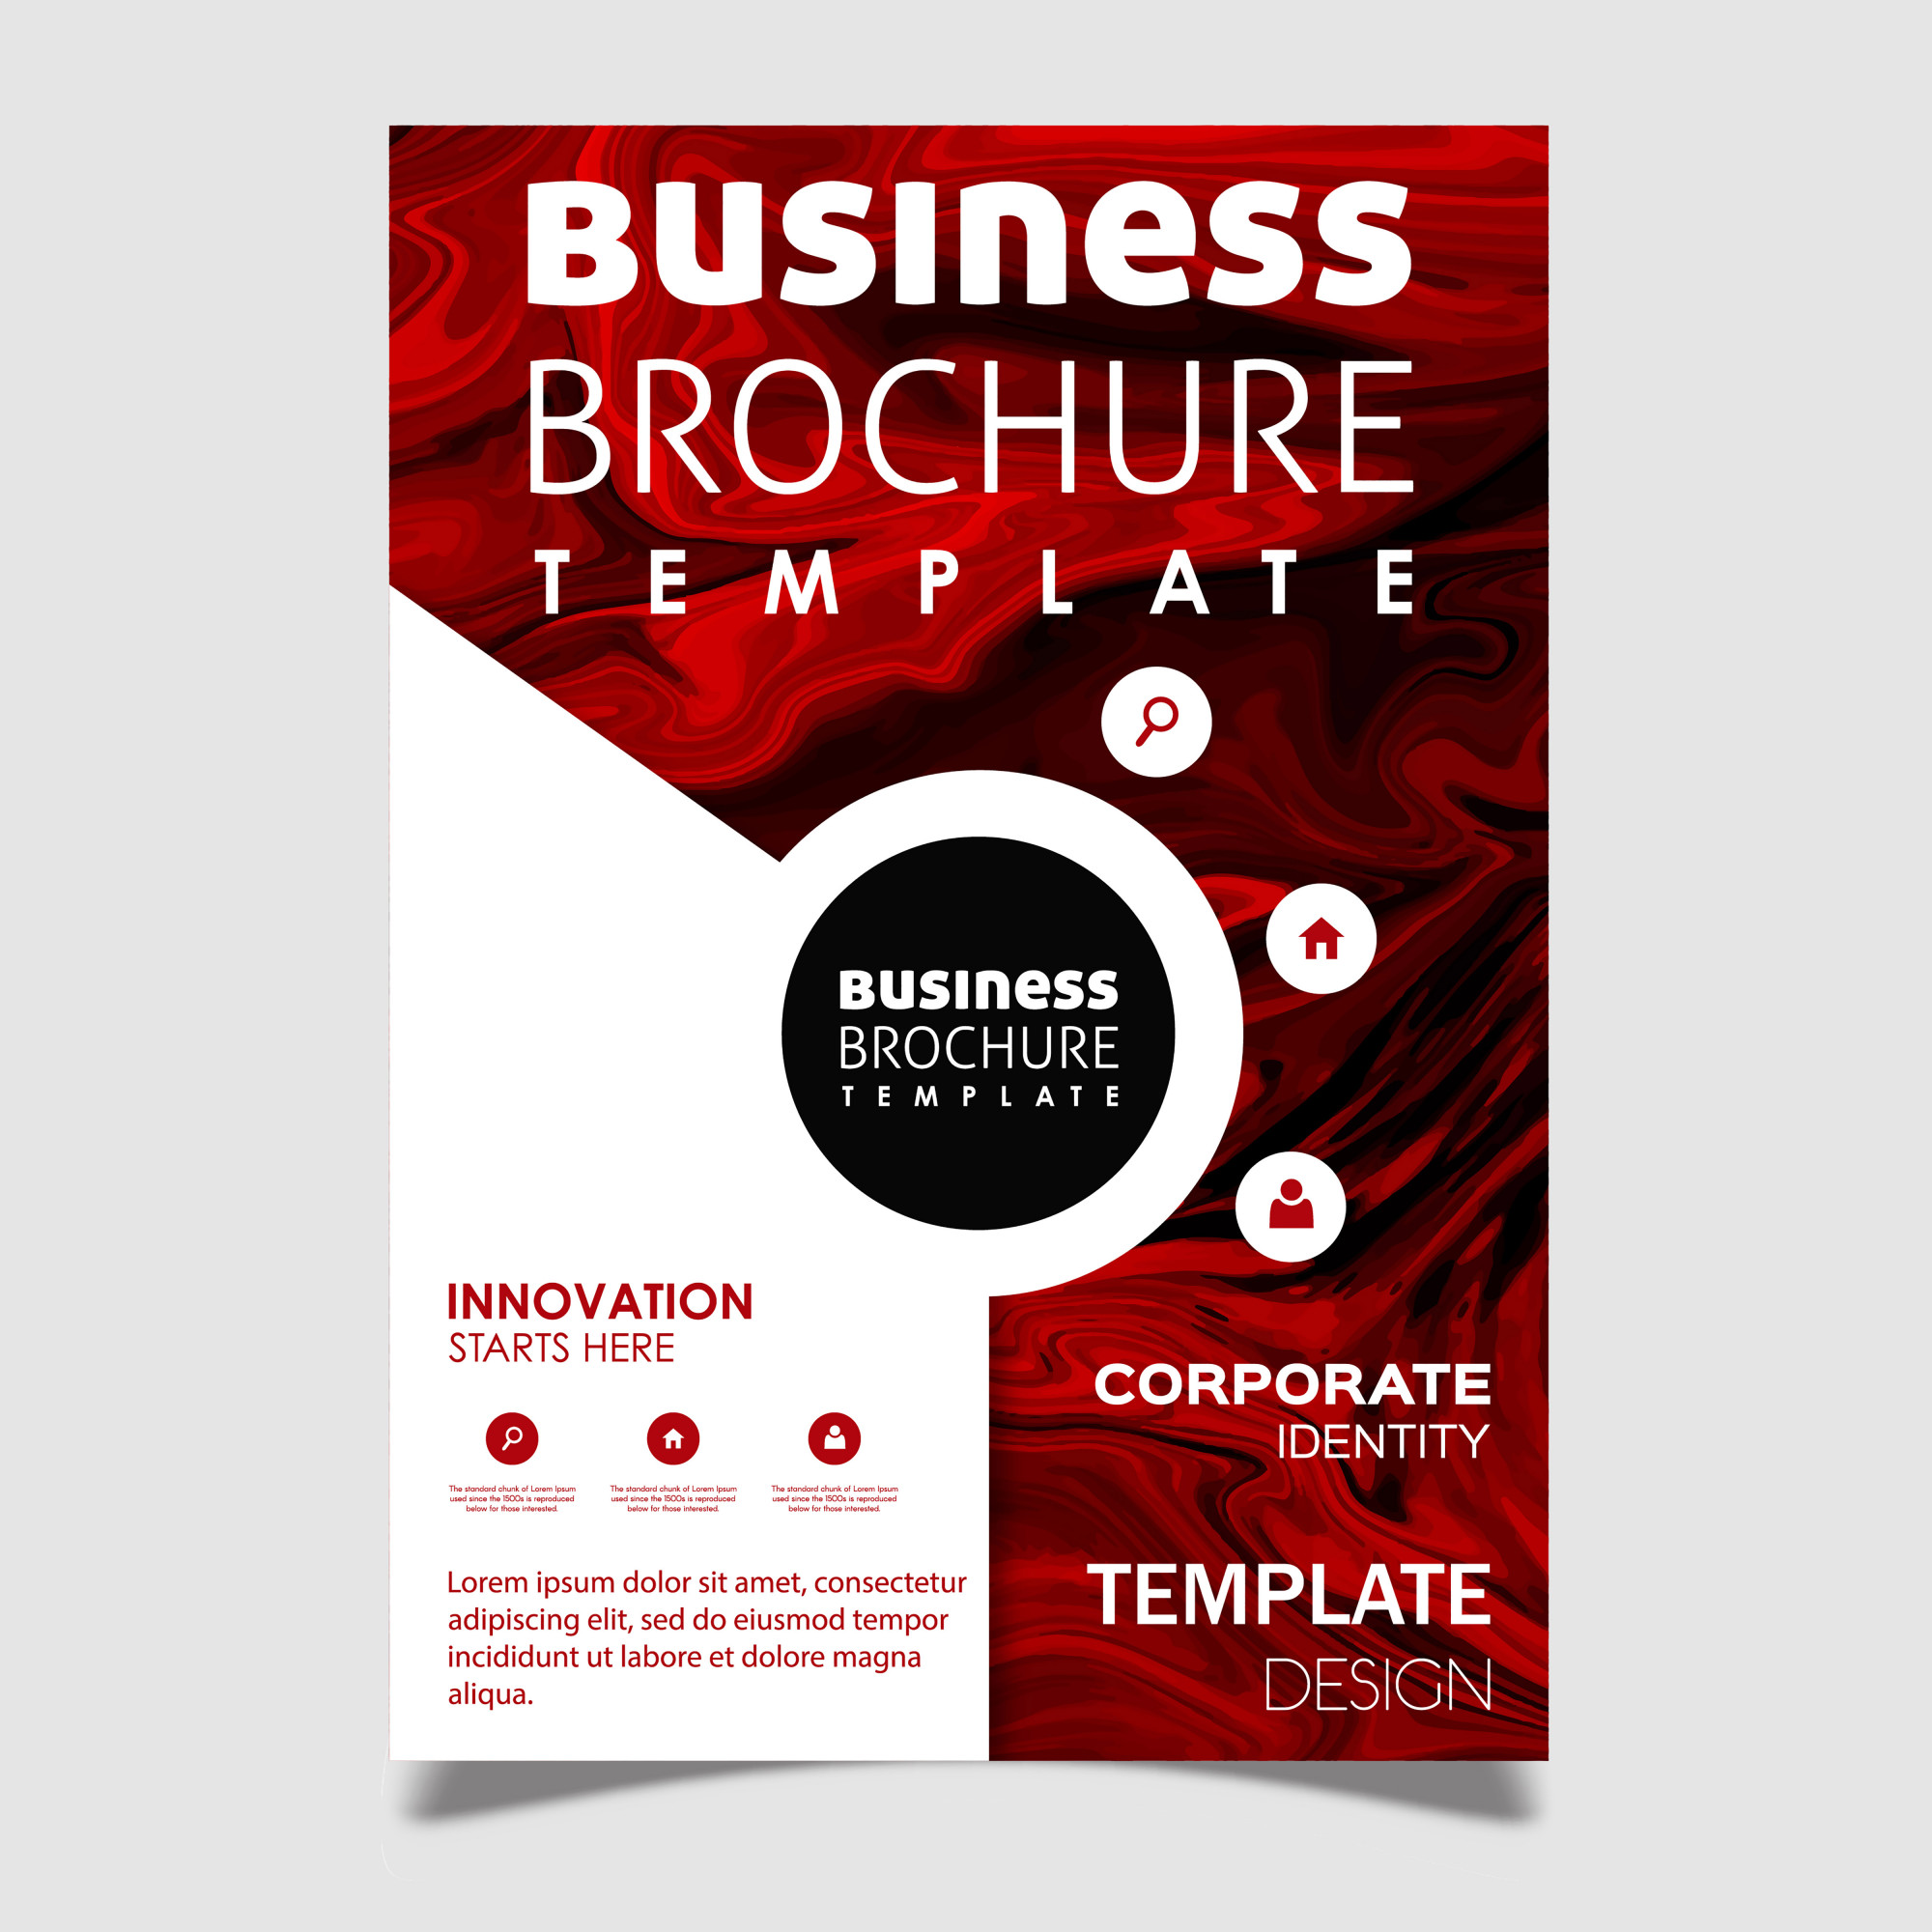 Marble Texture Business Brochure Design